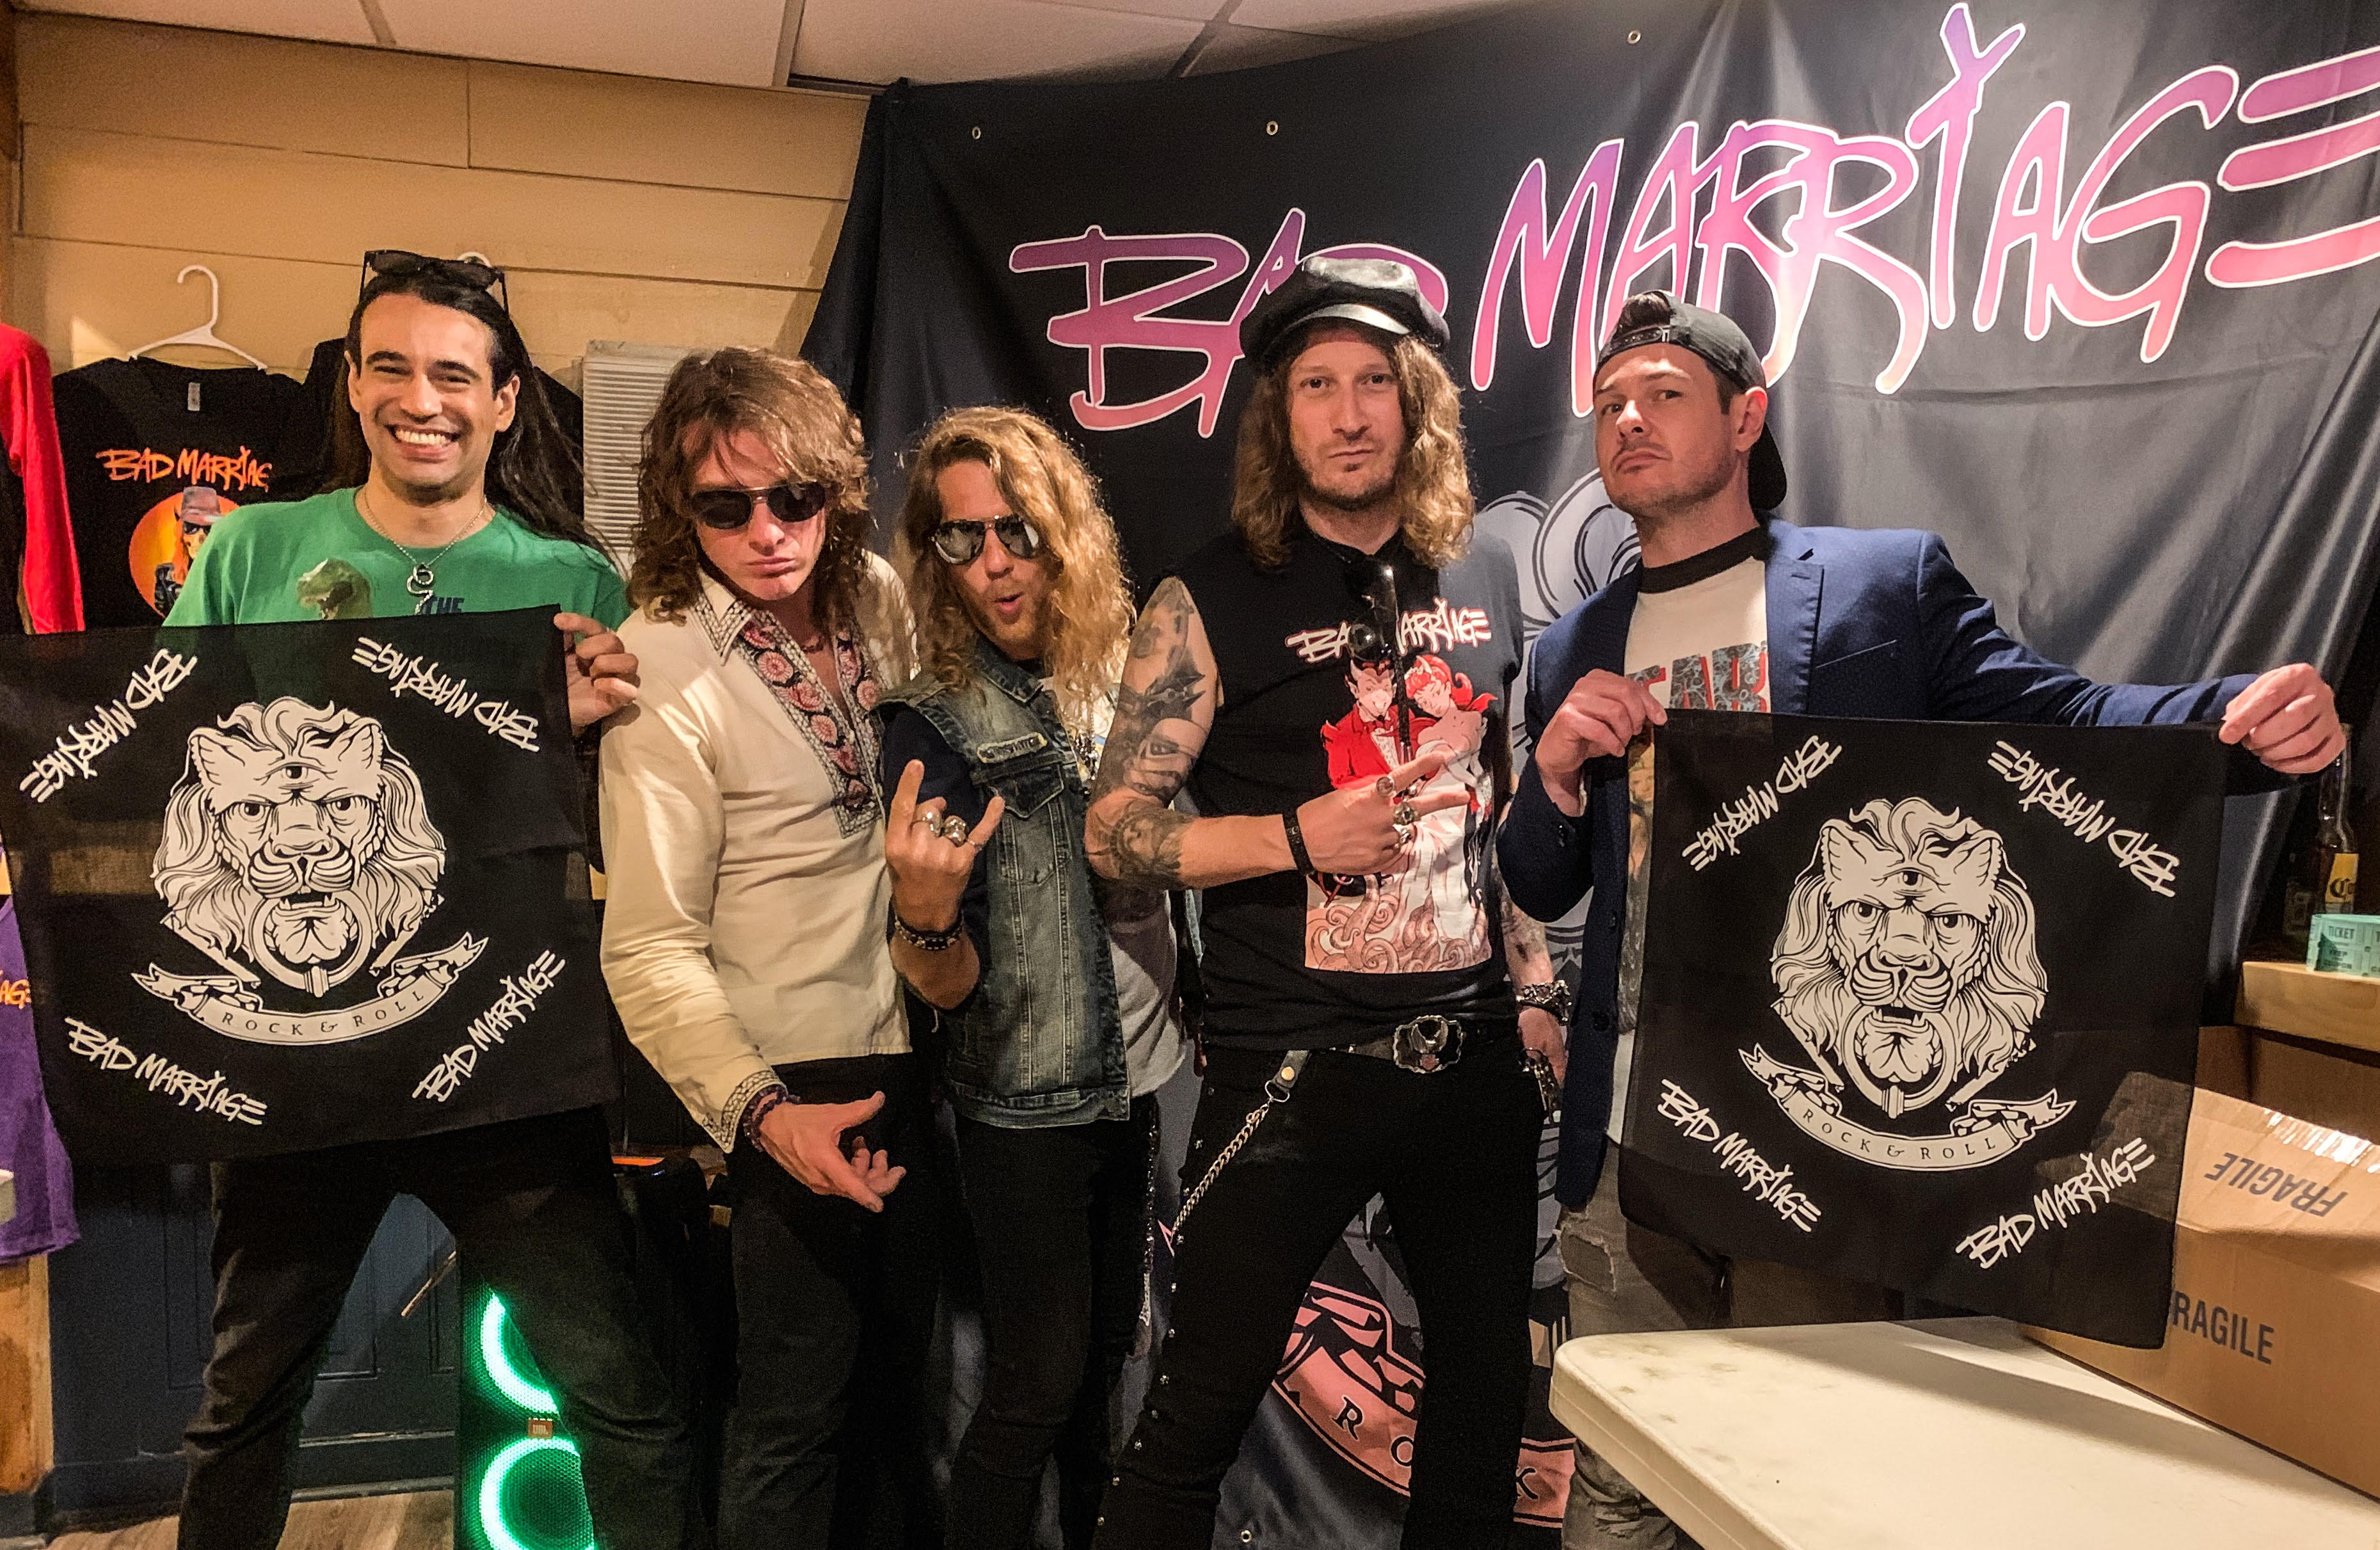 custom printed bandanas for classic rock band Bad Marriage VIP Package